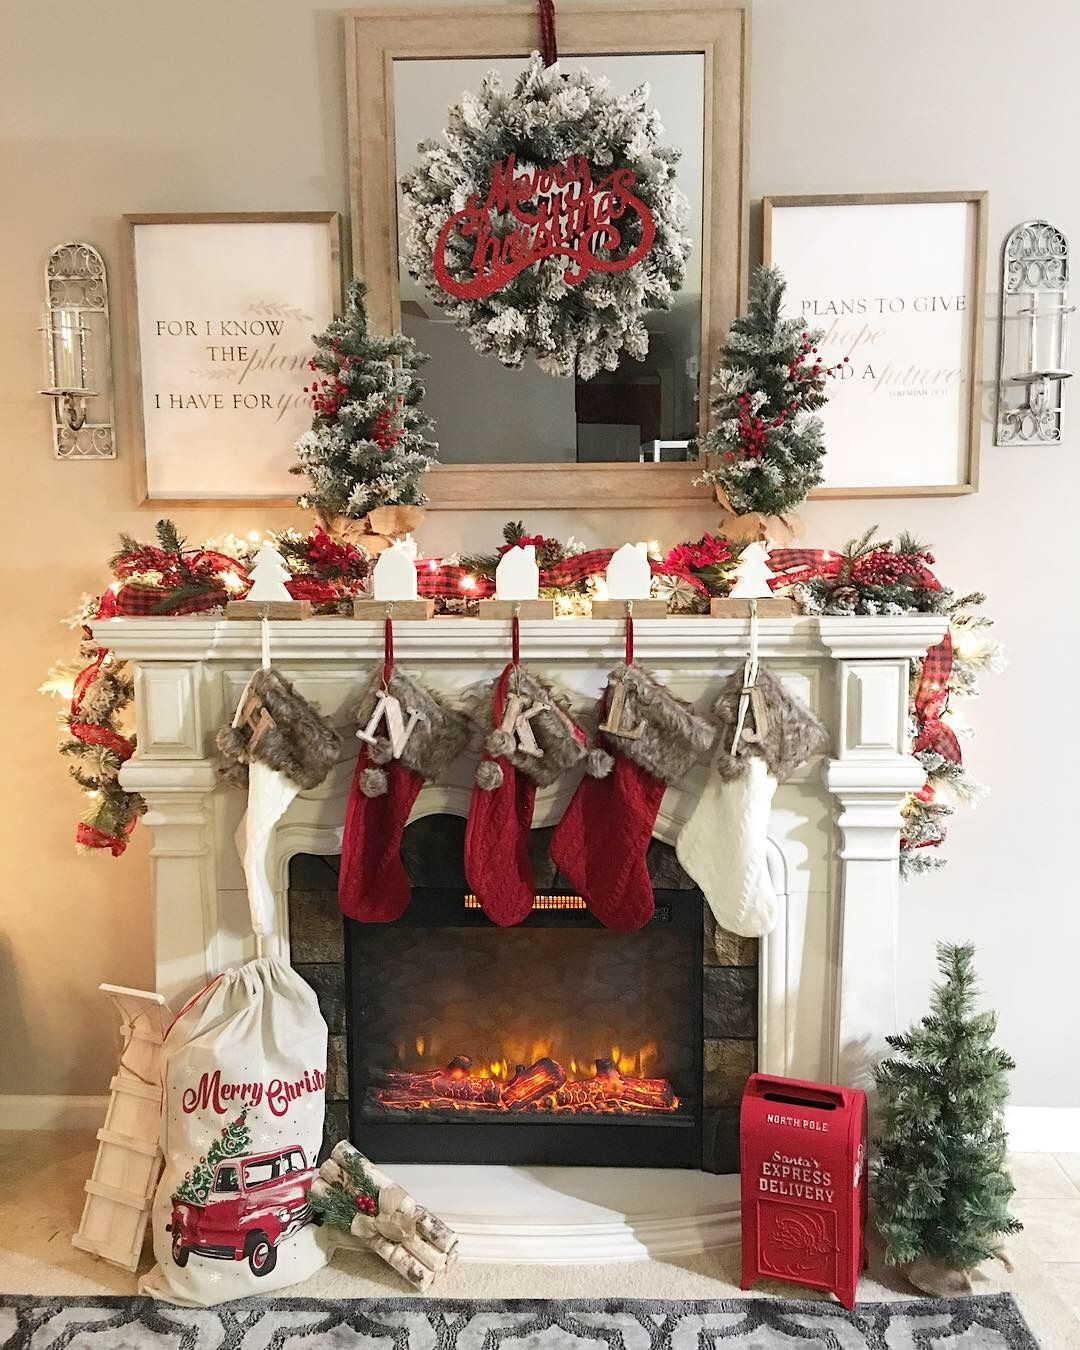 20+ Festive Christmas Mantel Ideas , How to Style a Holiday